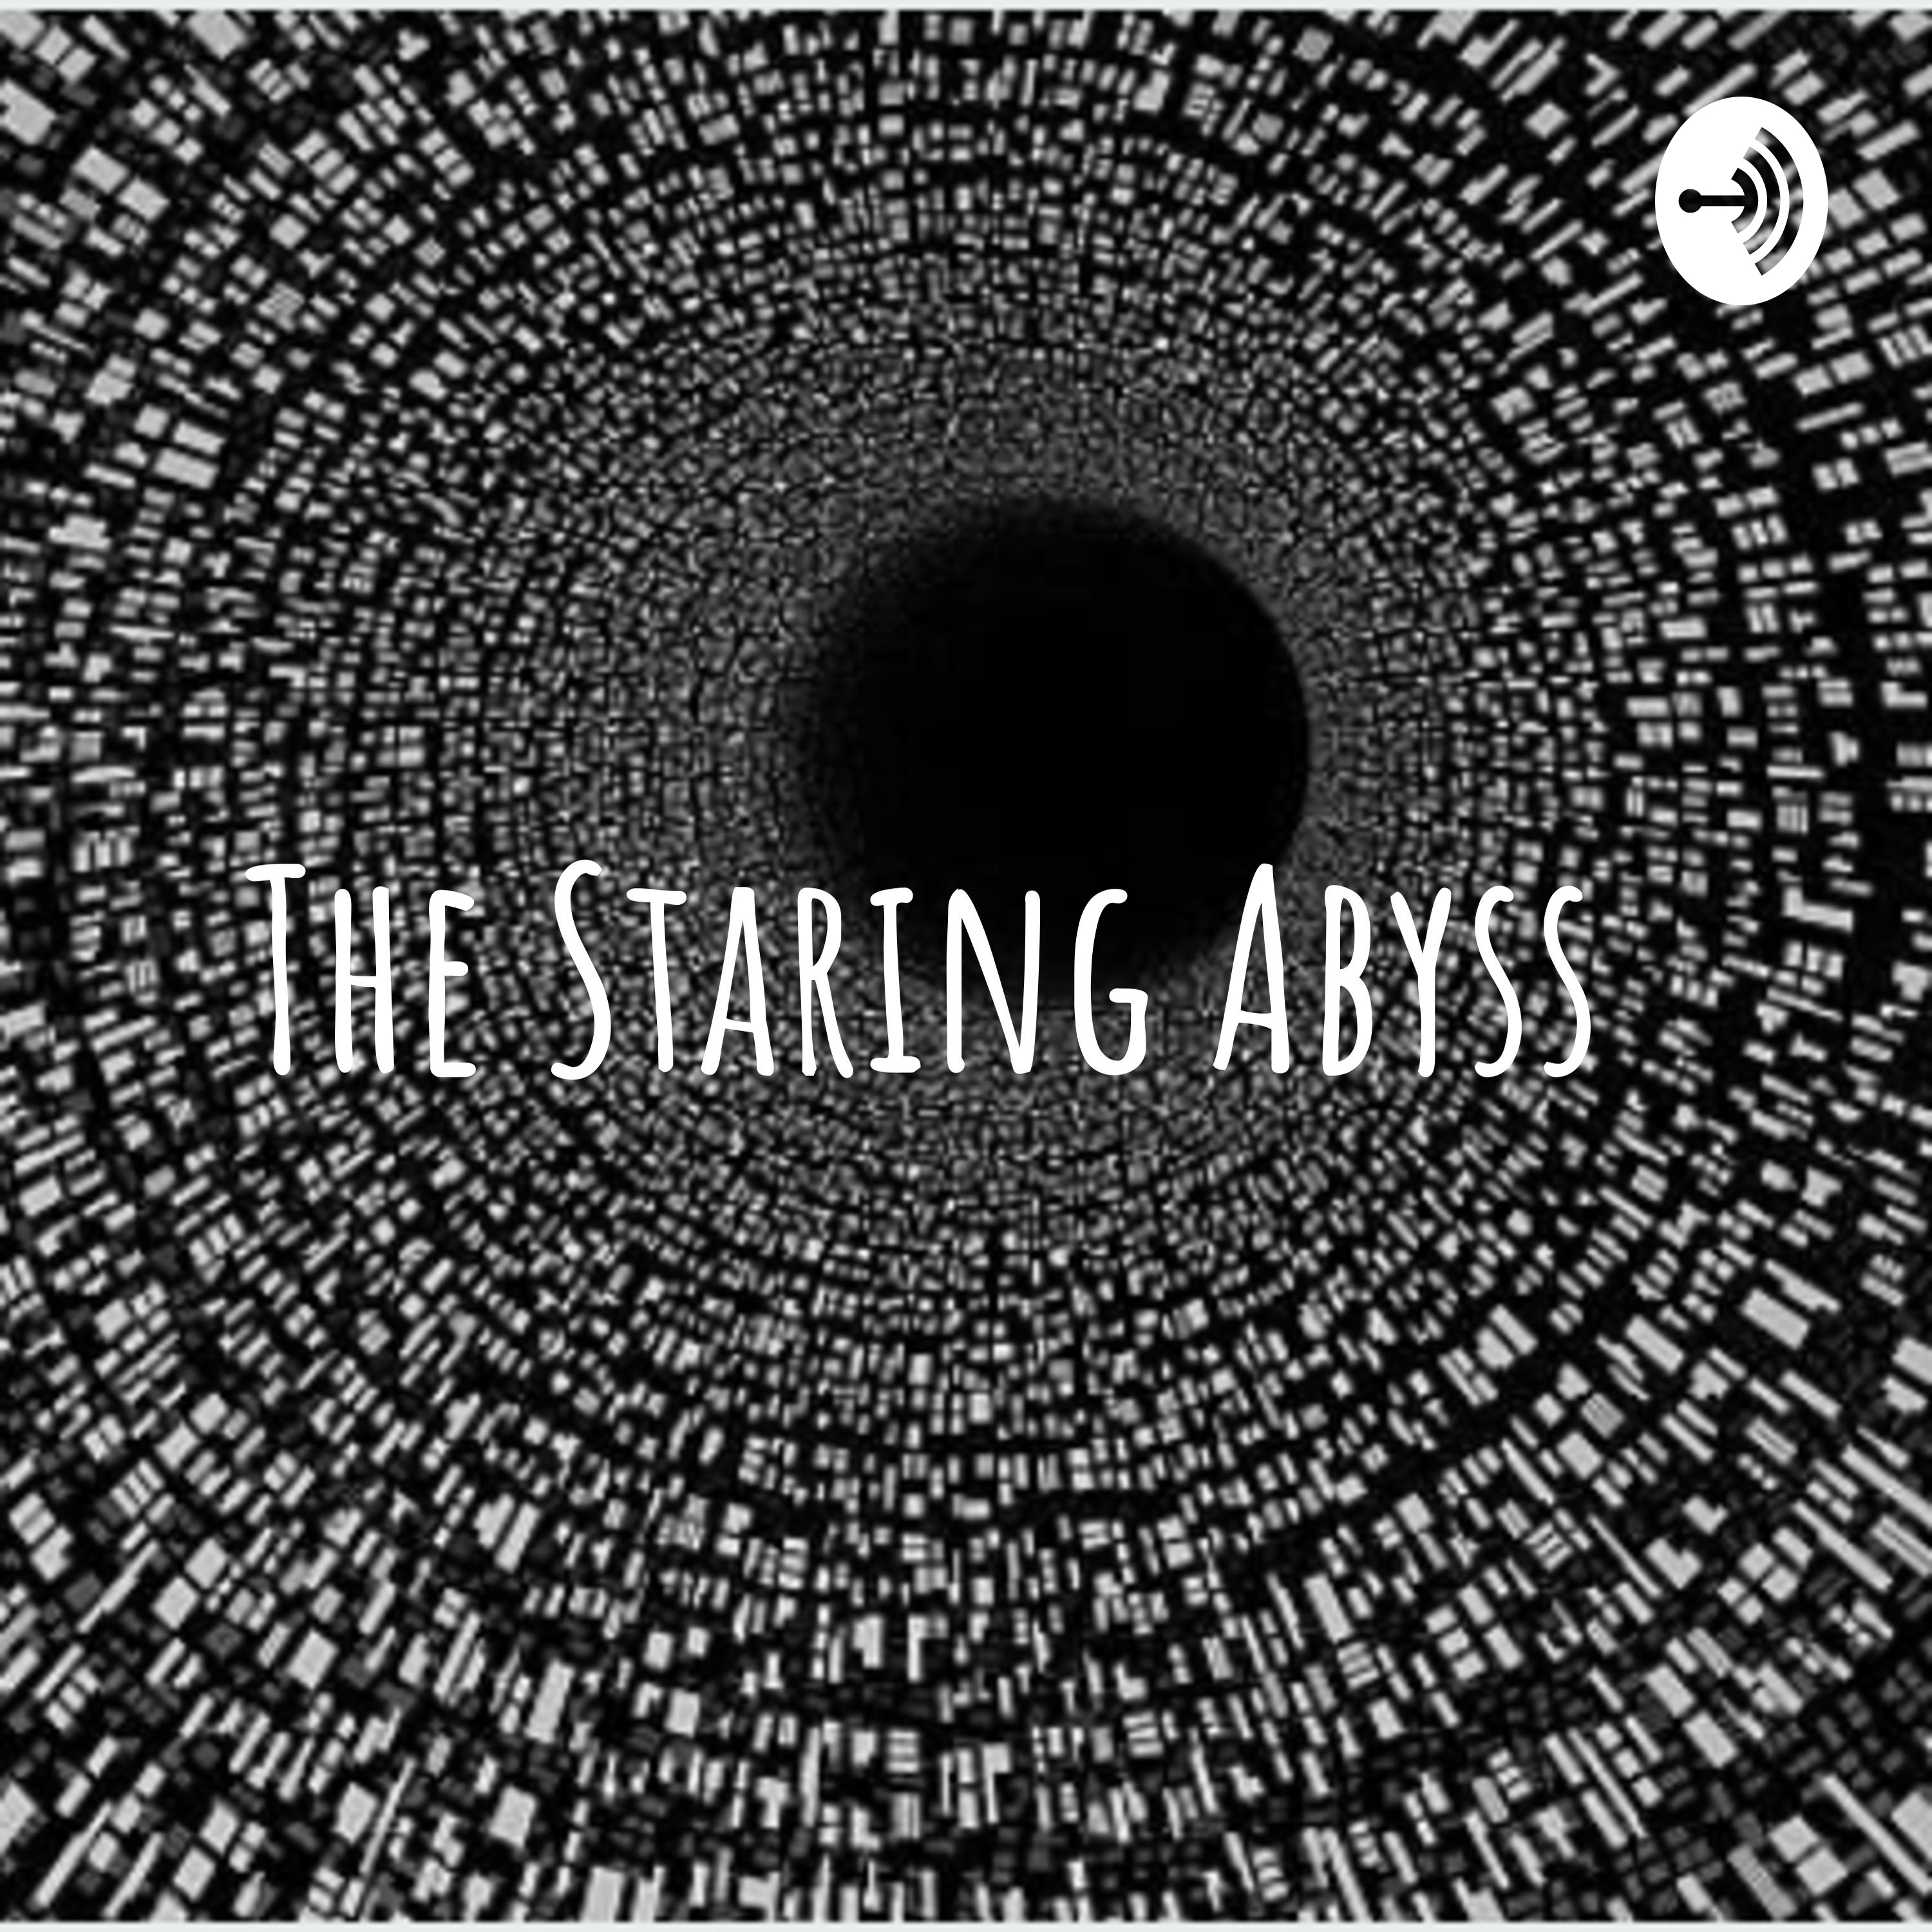 from the abyss, staring up